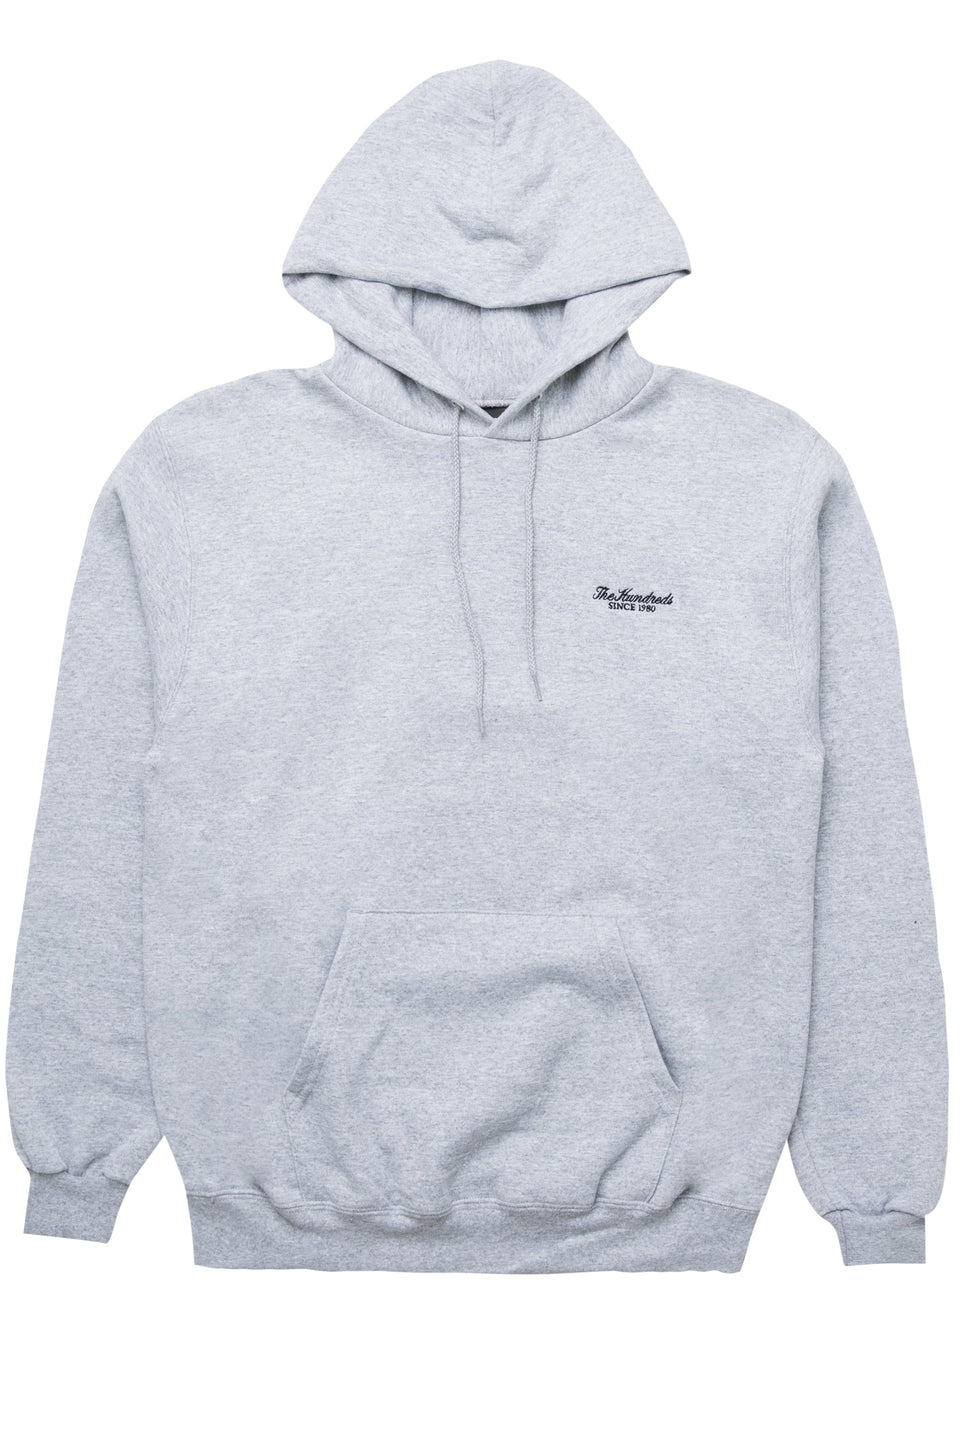 Motions Pullover Hoodie